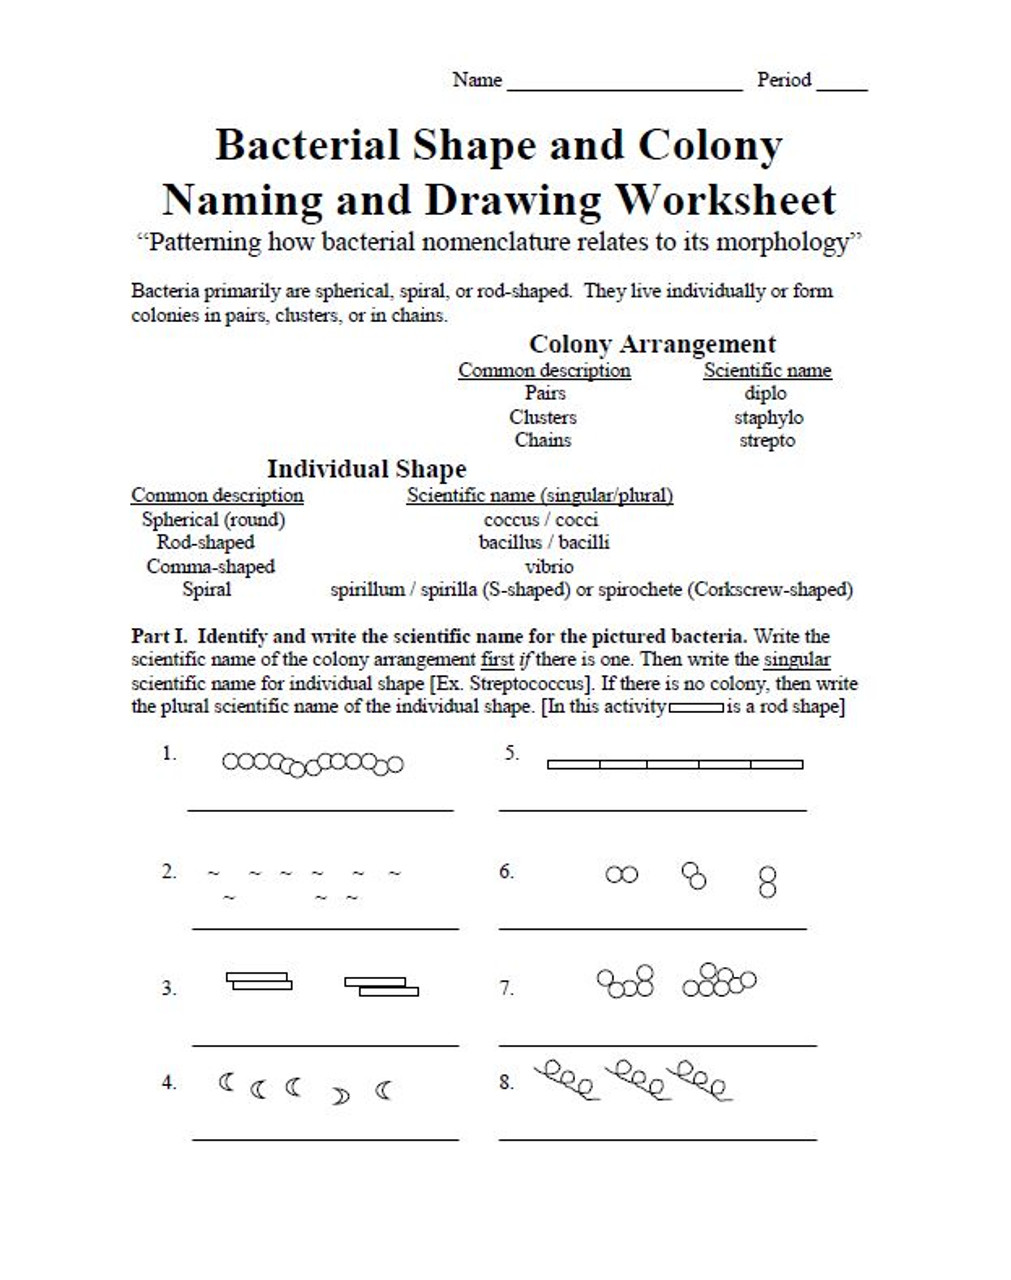 Bacterial Shape and Colony Naming and Drawing Worksheet - Amped Up Learning [ 1280 x 1011 Pixel ]